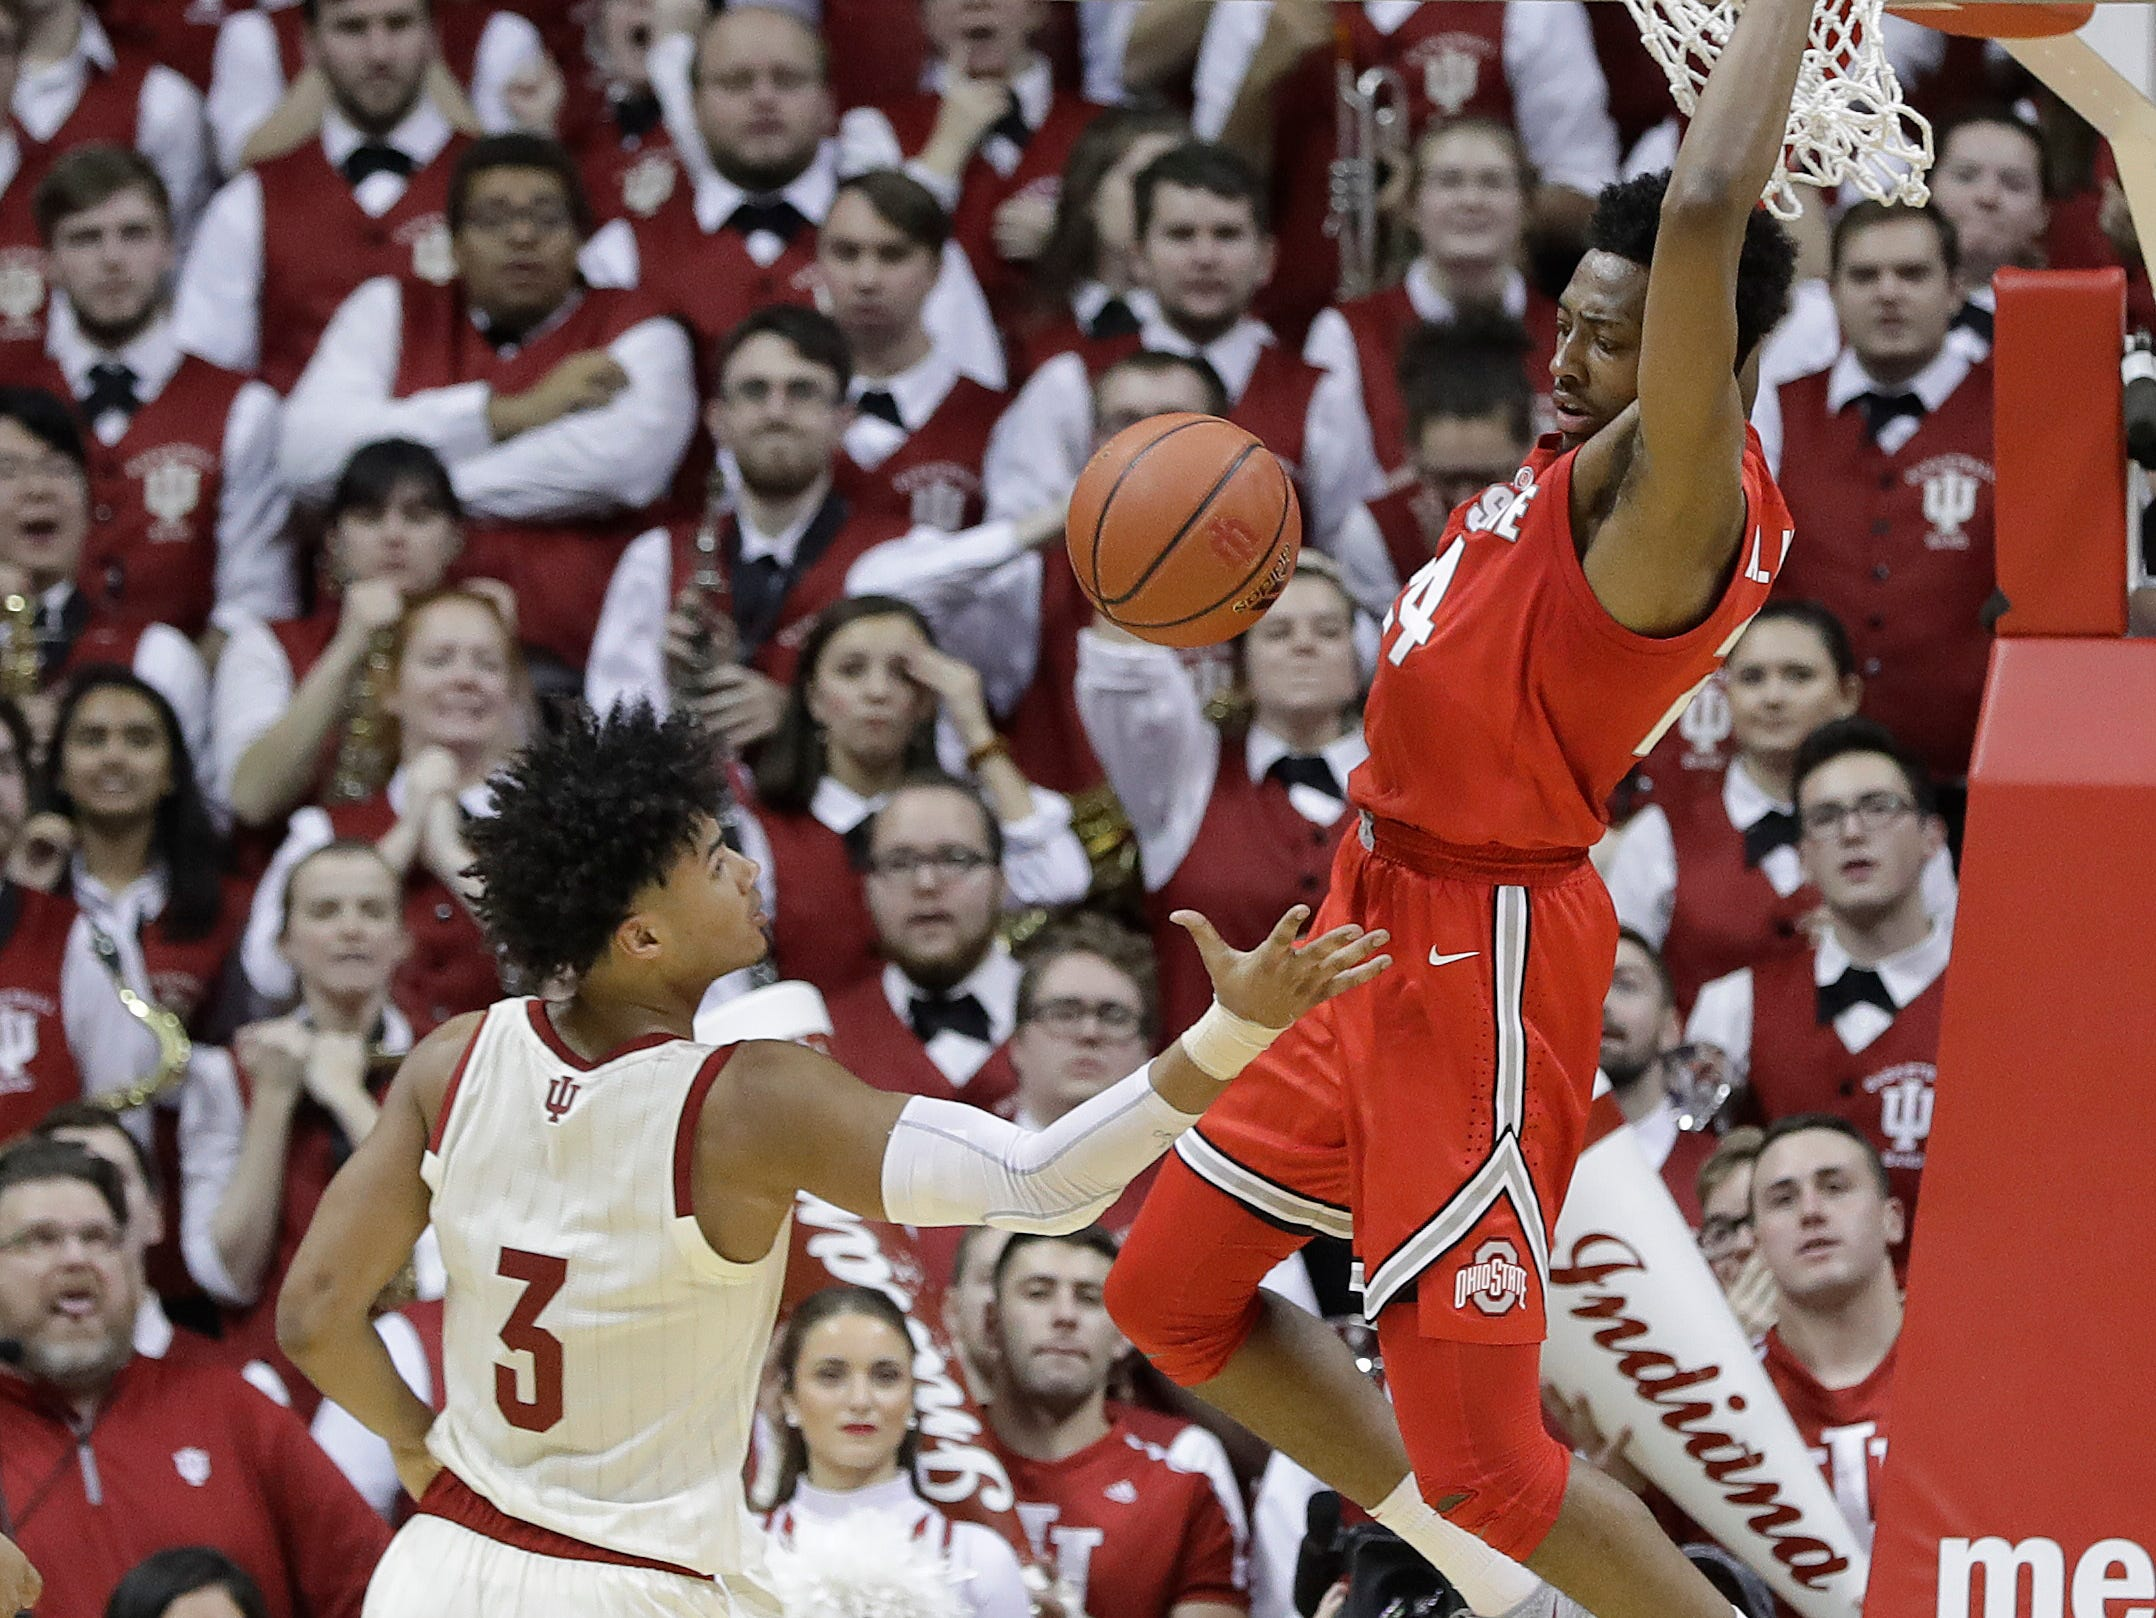 Ohio State's Andre Wesson (24) dunks and Indiana's Justin Smith (3) watches during the second half of an NCAA college basketball game, Sunday, Feb. 10, 2019, in Bloomington, Ind. Ohio State won 55-52. (AP Photo/Darron Cummings)